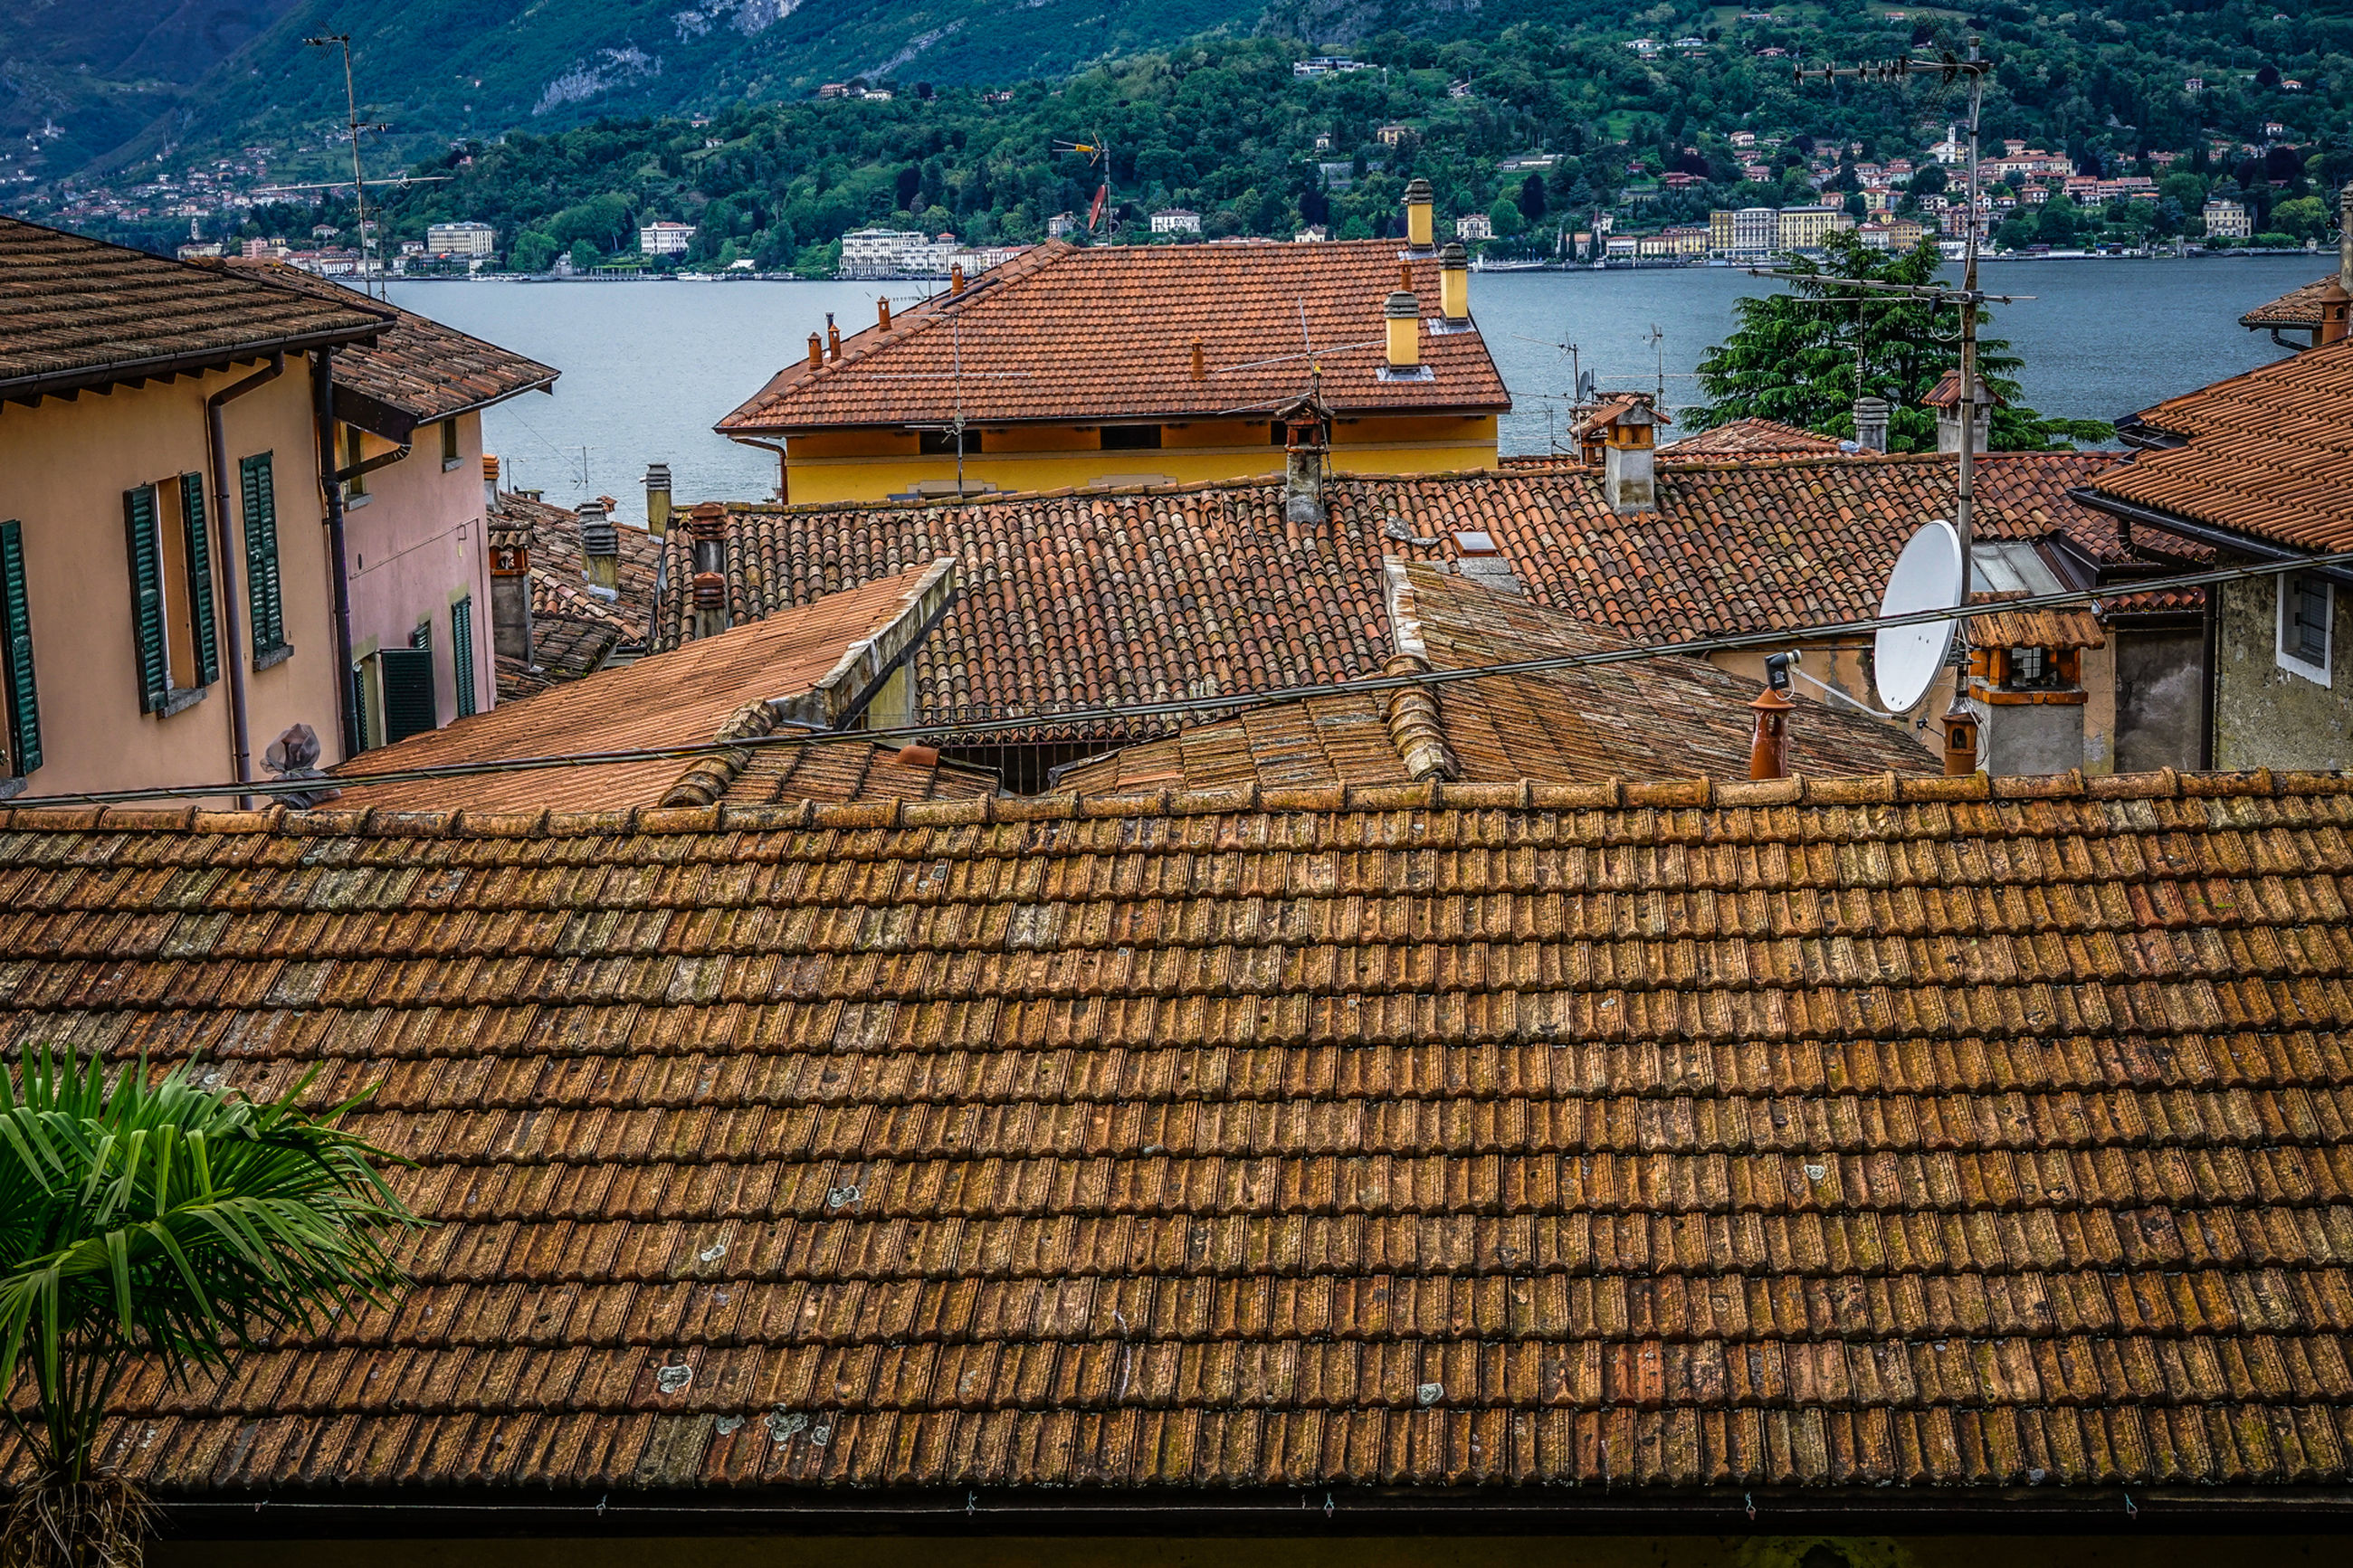 architecture, built structure, building exterior, building, roof, roof tile, residential district, house, high angle view, nature, day, no people, city, outdoors, tree, town, plant, travel destinations, water, brown, townscape